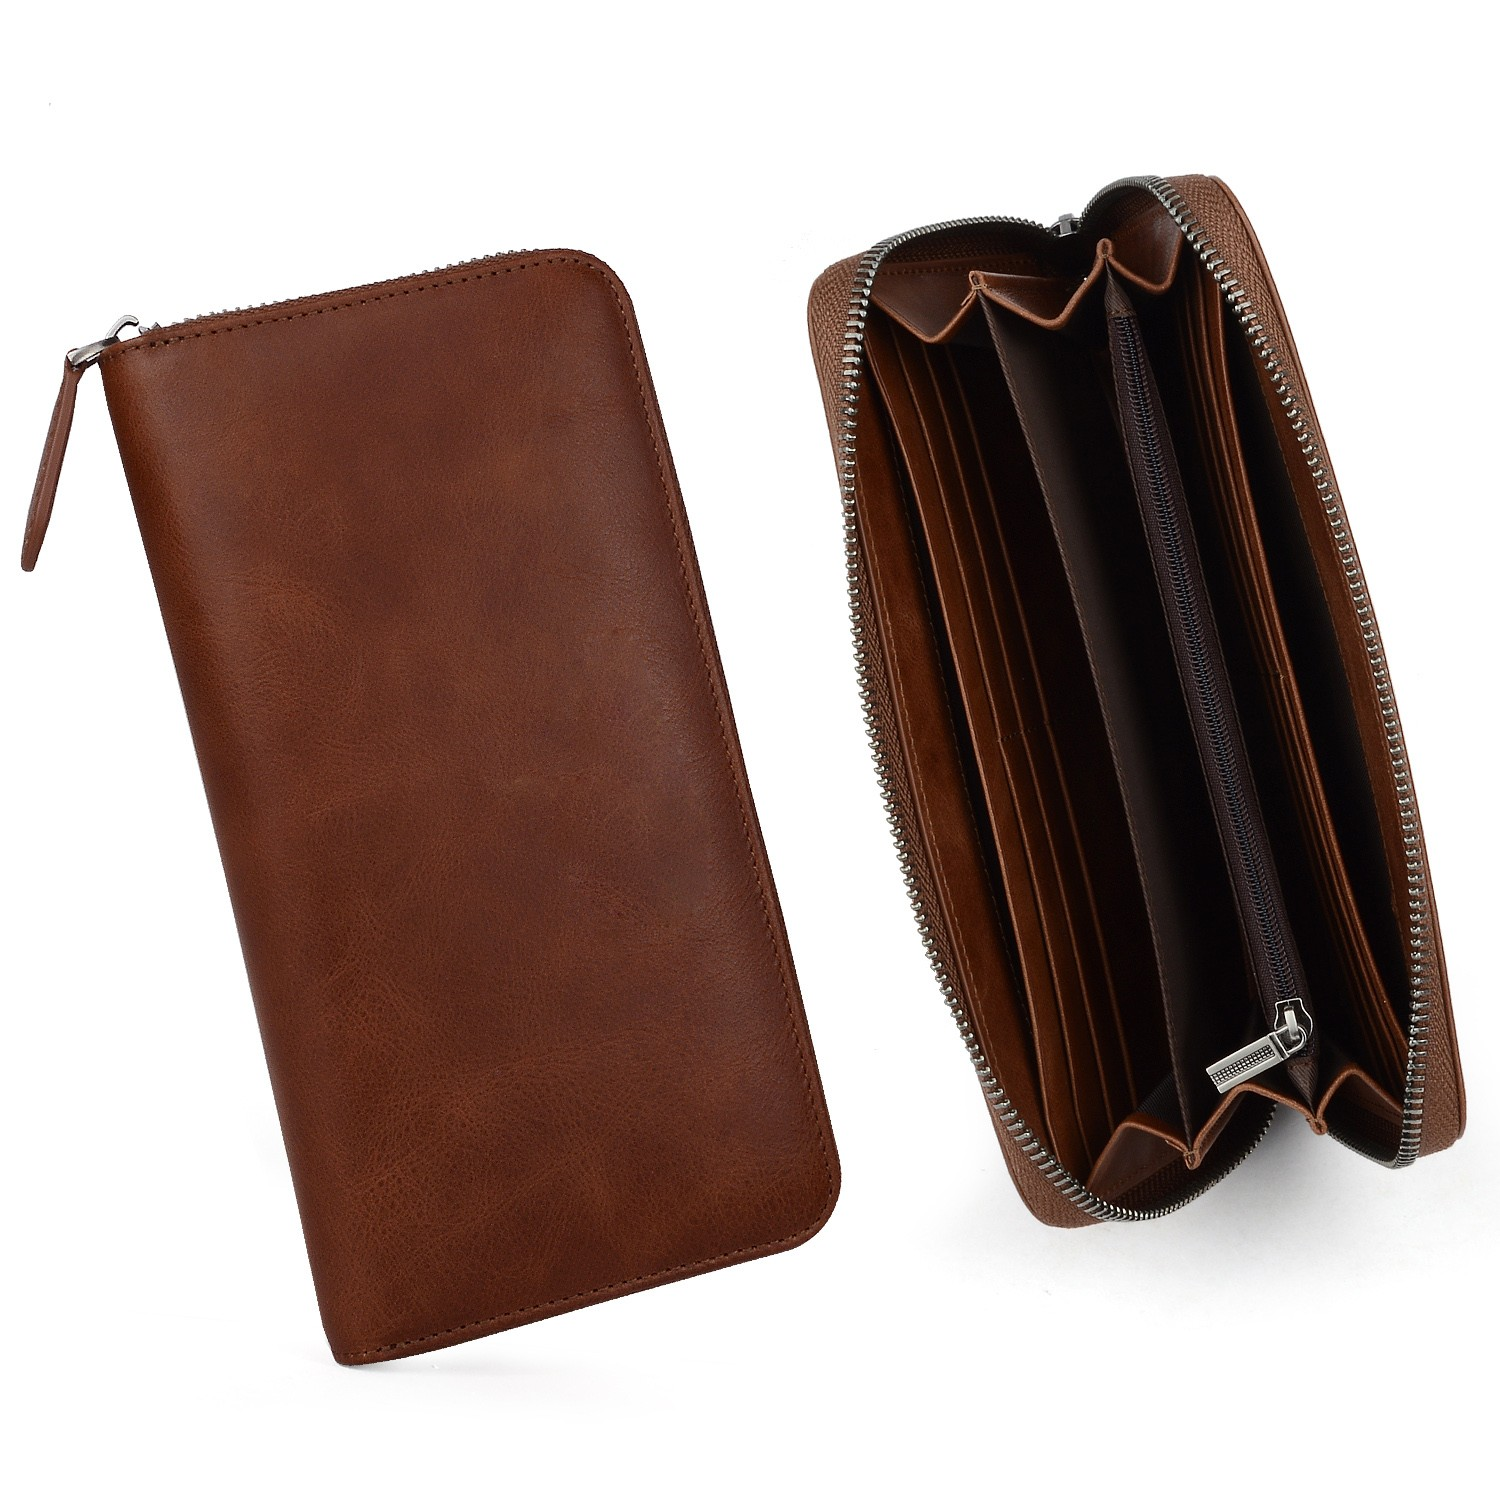 AIVI leather card wallet online for iphone 7/7 plus-8